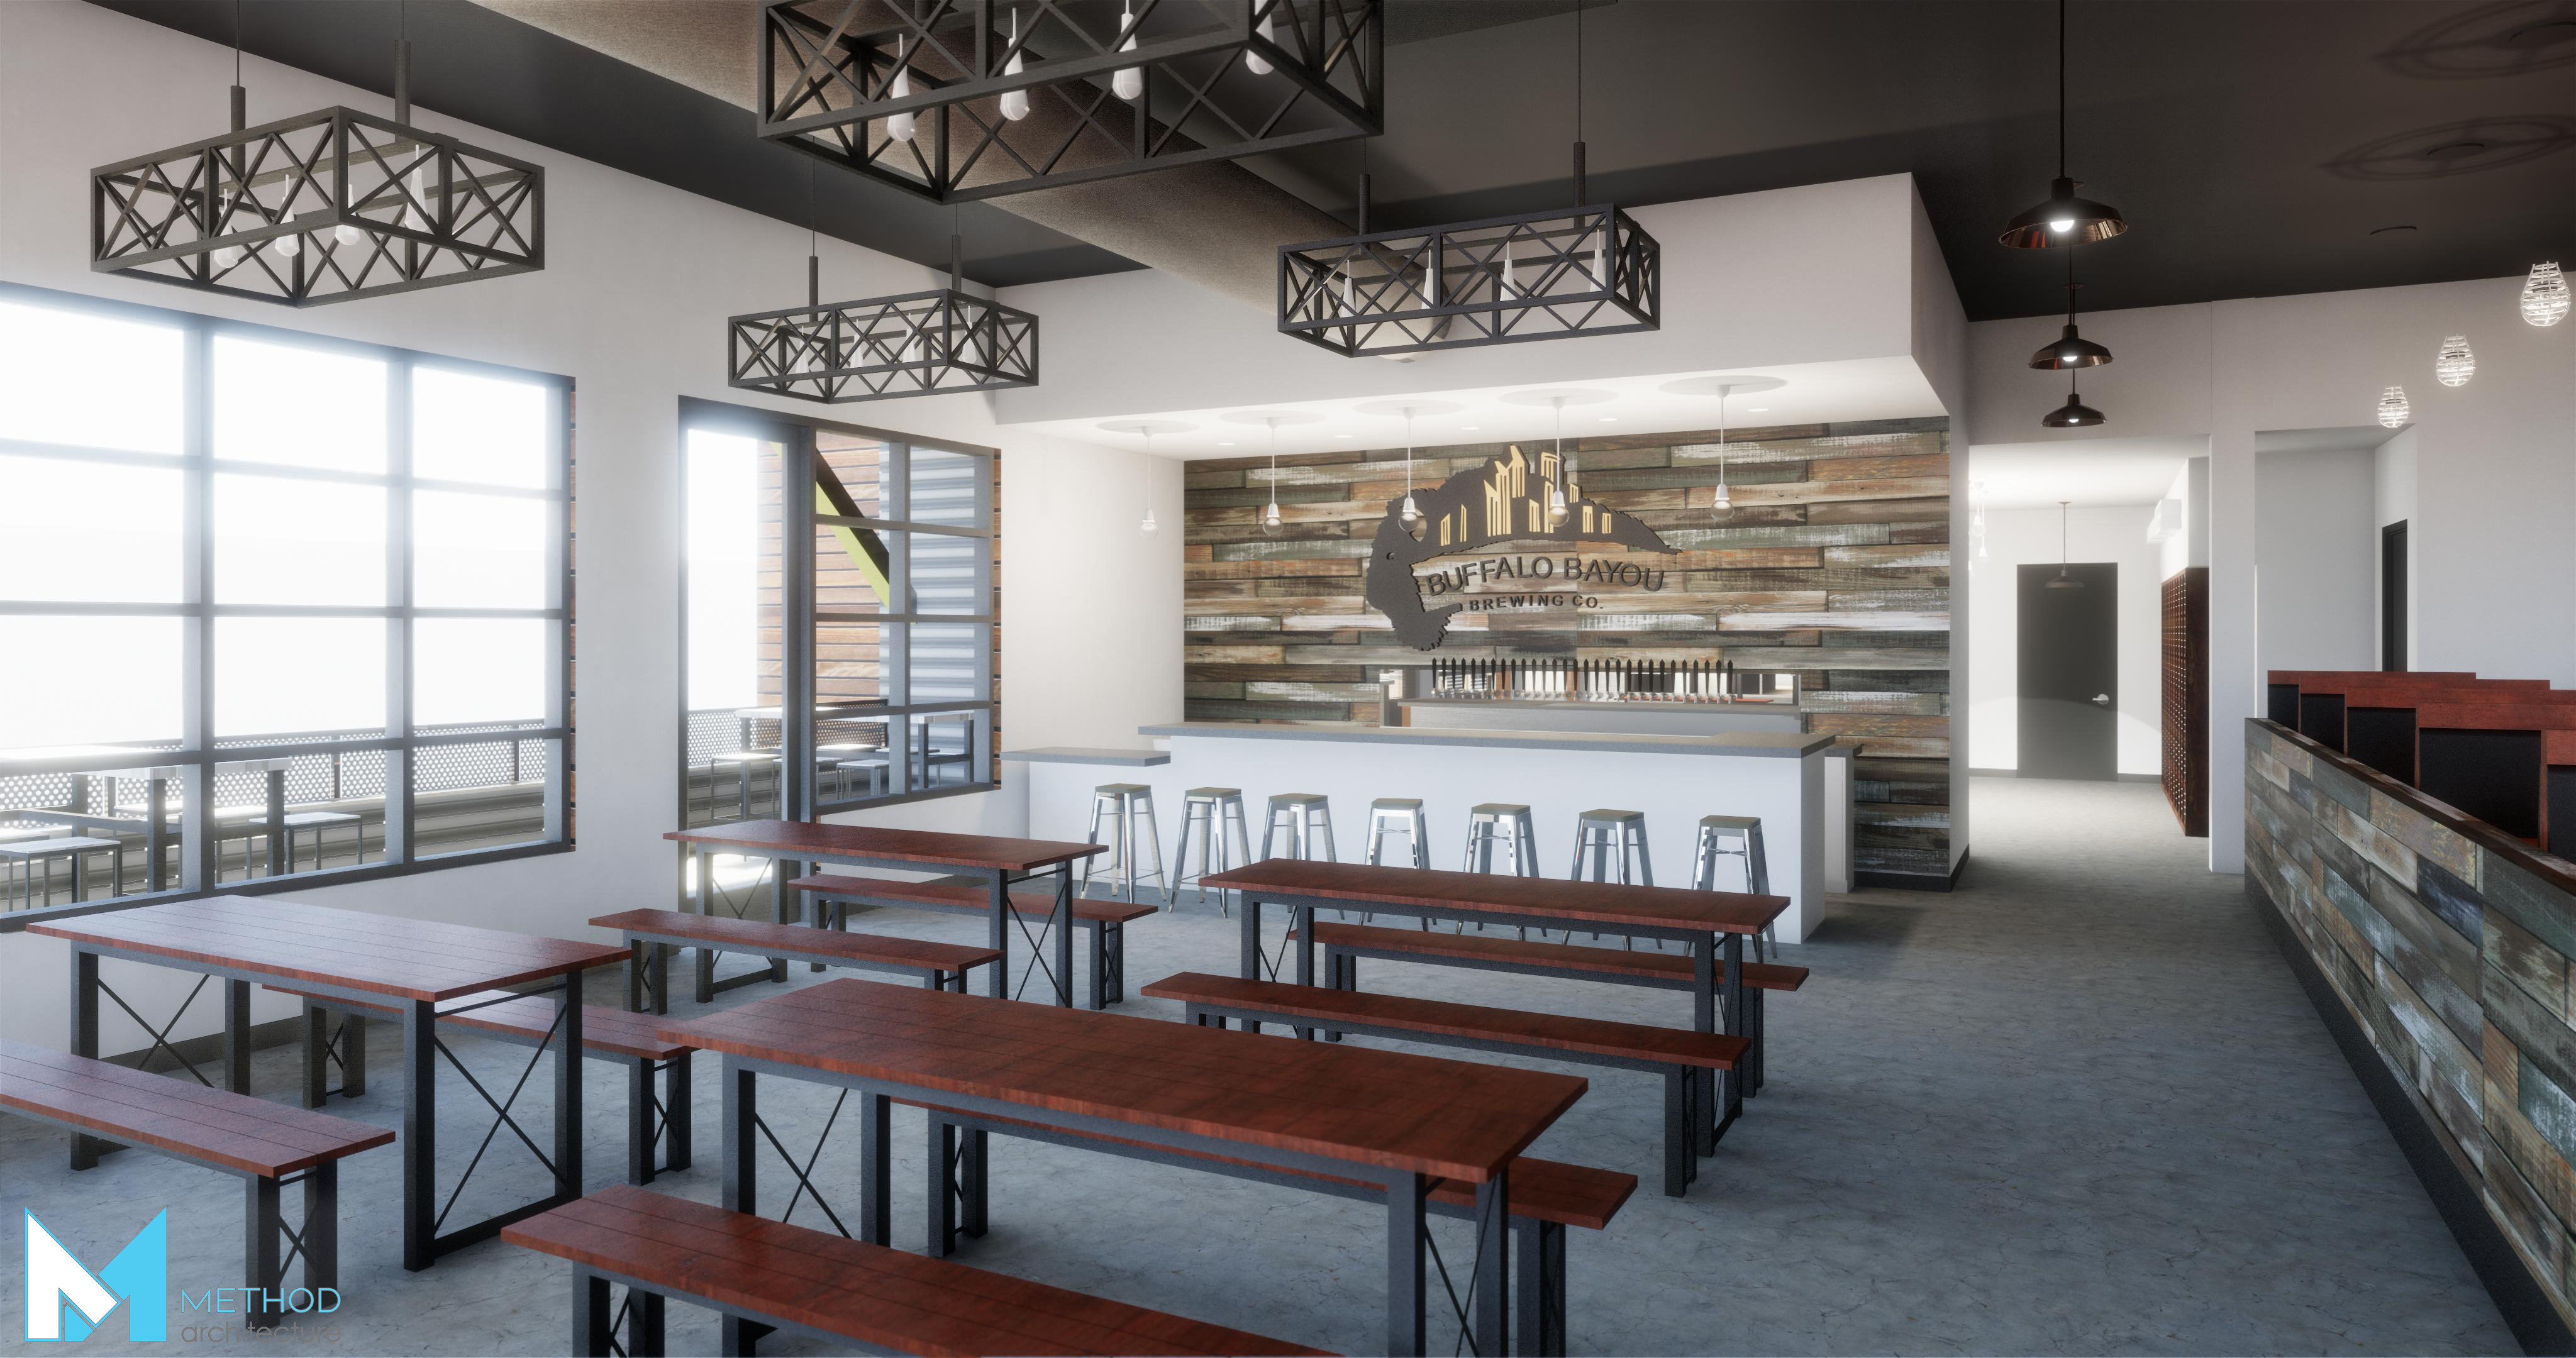 buffalo bayou brewing announces plans for houston taproom. Black Bedroom Furniture Sets. Home Design Ideas